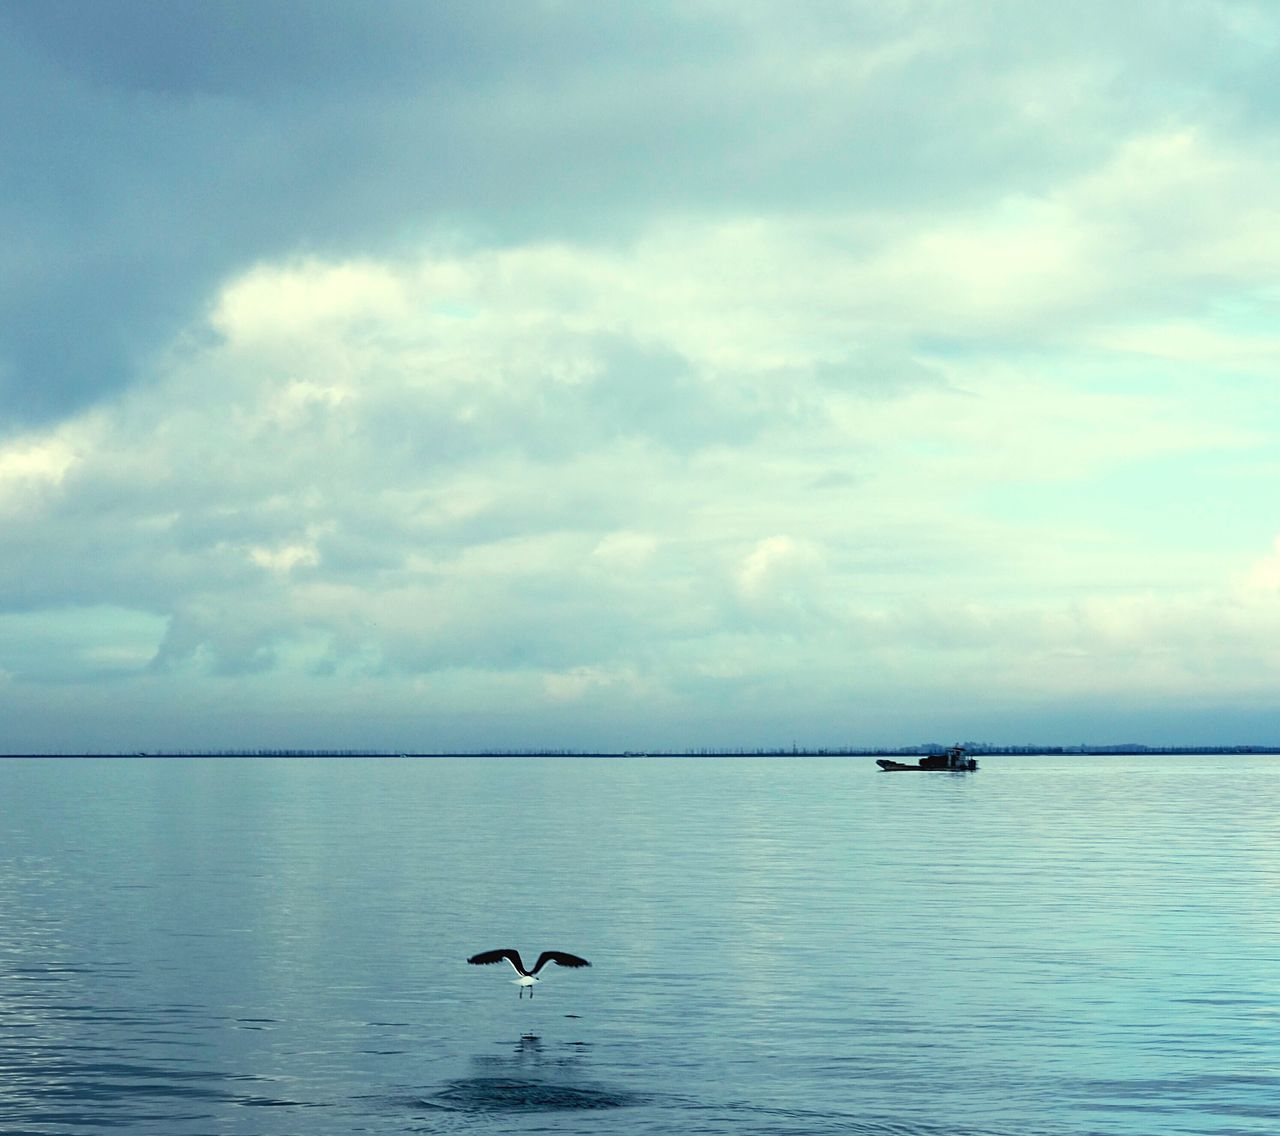 water, nature, animal themes, animals in the wild, sky, tranquility, scenics, beauty in nature, one animal, cloud - sky, tranquil scene, day, sea, bird, waterfront, no people, animal wildlife, outdoors, flying, spread wings, horizon over water